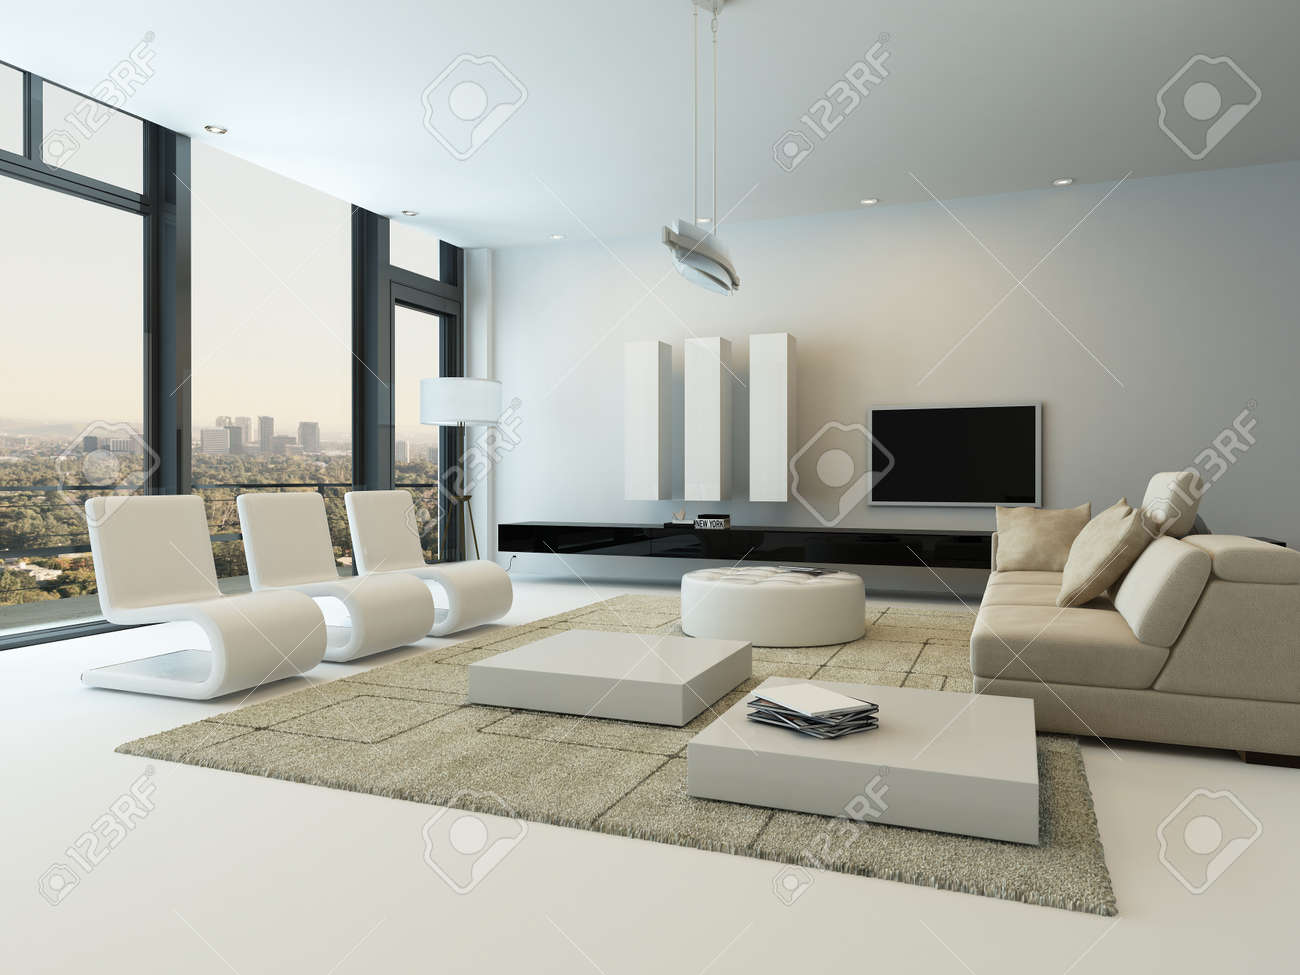 Incroyable Modern Living Room Interior With Design Furniture Stock Photo   25065586